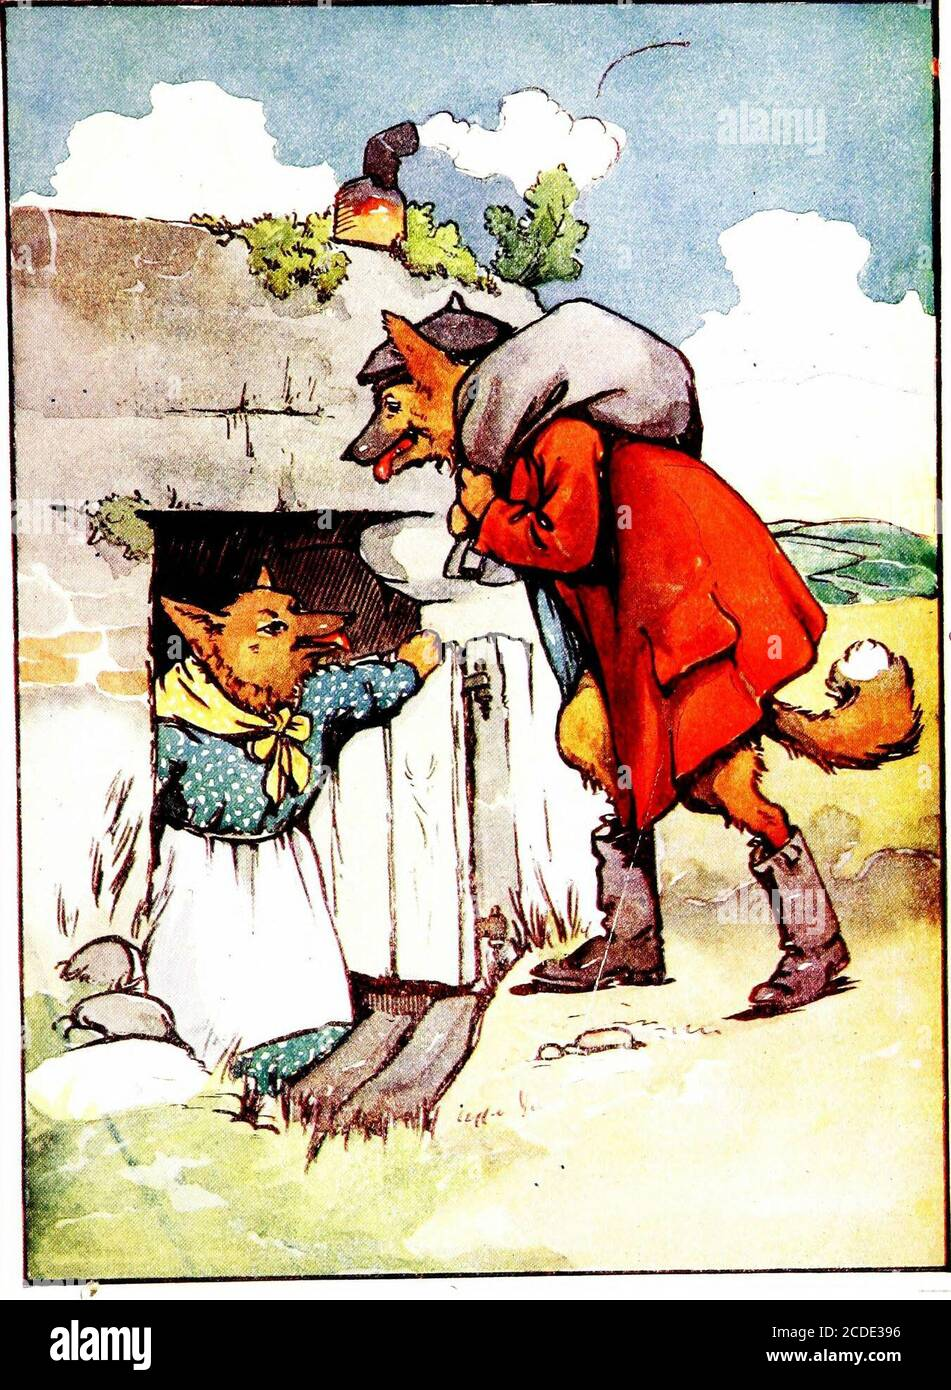 The Little Small Red Hen Old Mother Foxs Washing Day Dear Me He Said She Weighs Lil E Agoose I I Thought Shed Be Light As A Wren What A Splendid Supper Последние твиты от hei (@27heidi). https www alamy com the little small red hen old mother foxs washing day dear me he said she weighs lile agoose i i thought shed be light as a wrenwhat a splendid supper well have to night off the little small red hen so heavily wearily trudged he homeand kept shifting the sack about and when at last he came to his doorthere was old mother fox looking out she said to him you look tired my dearand he answered ah shes caught i and he puffed and licked his lips and saidshes twice as fat as i thought i he asked my love is the pot on the boil its boiling fast she replied he said then take image369718194 html